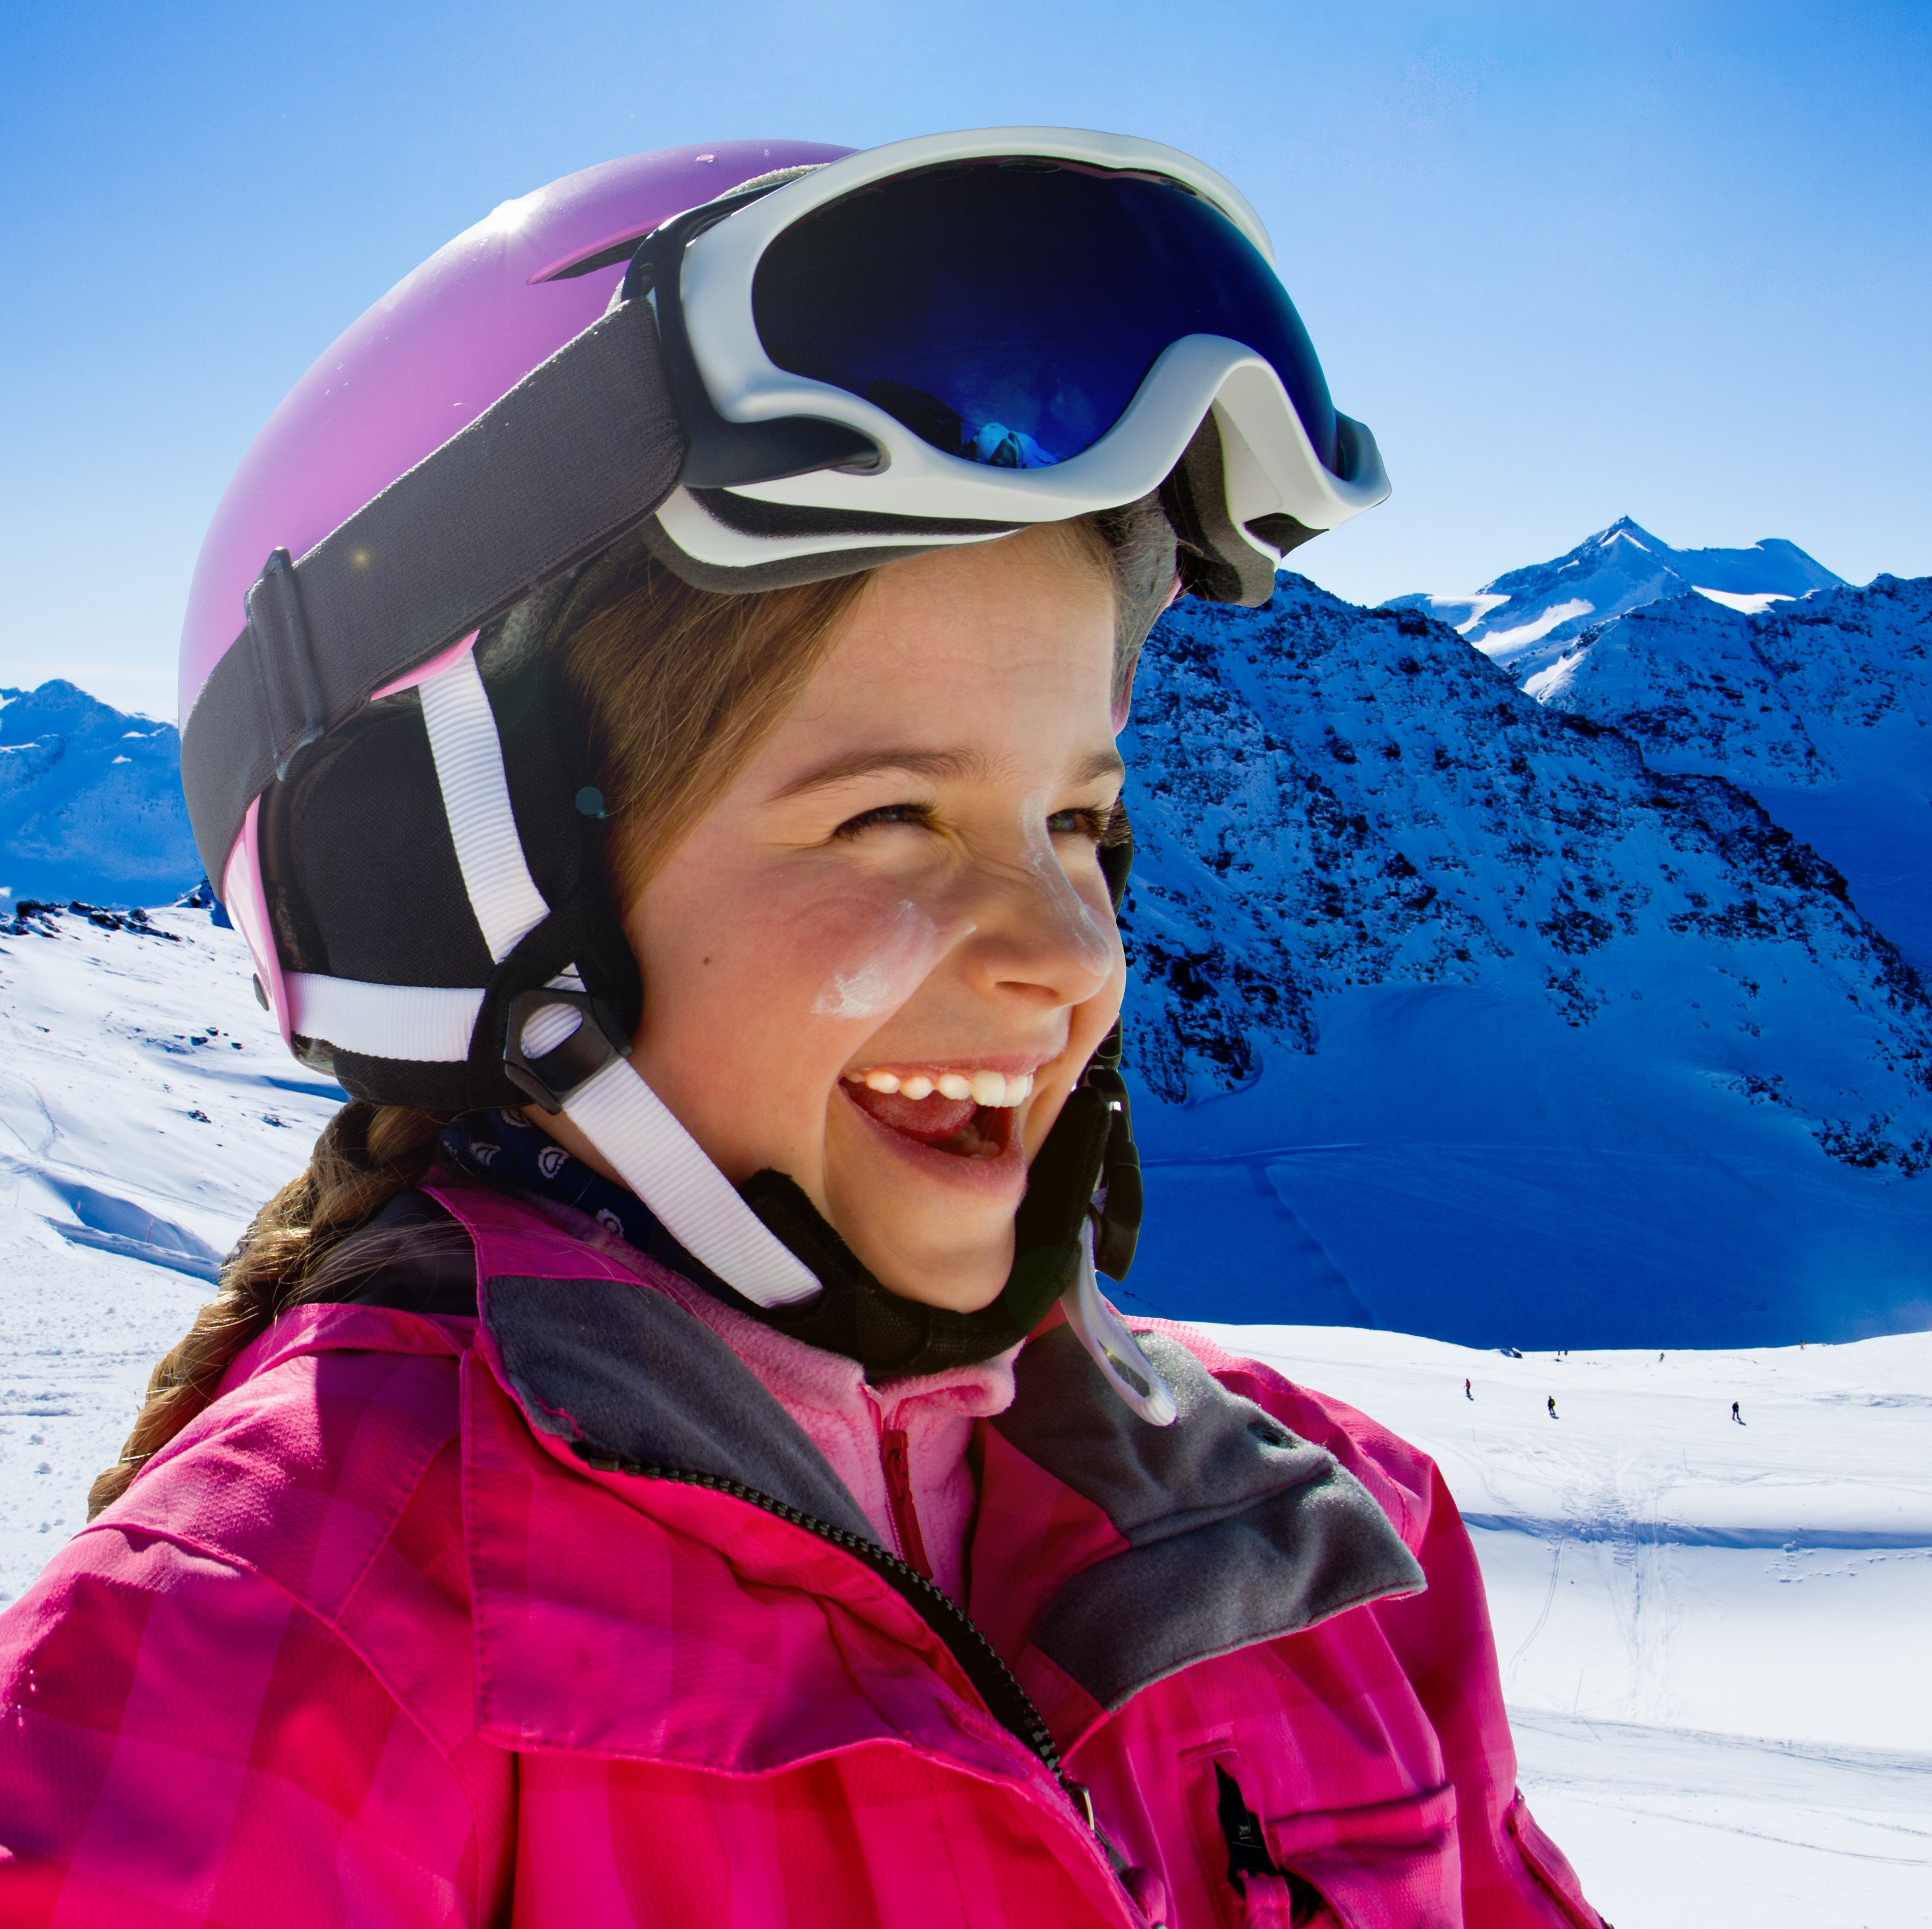 Ski, snow, sun and winter fun - happy young skier